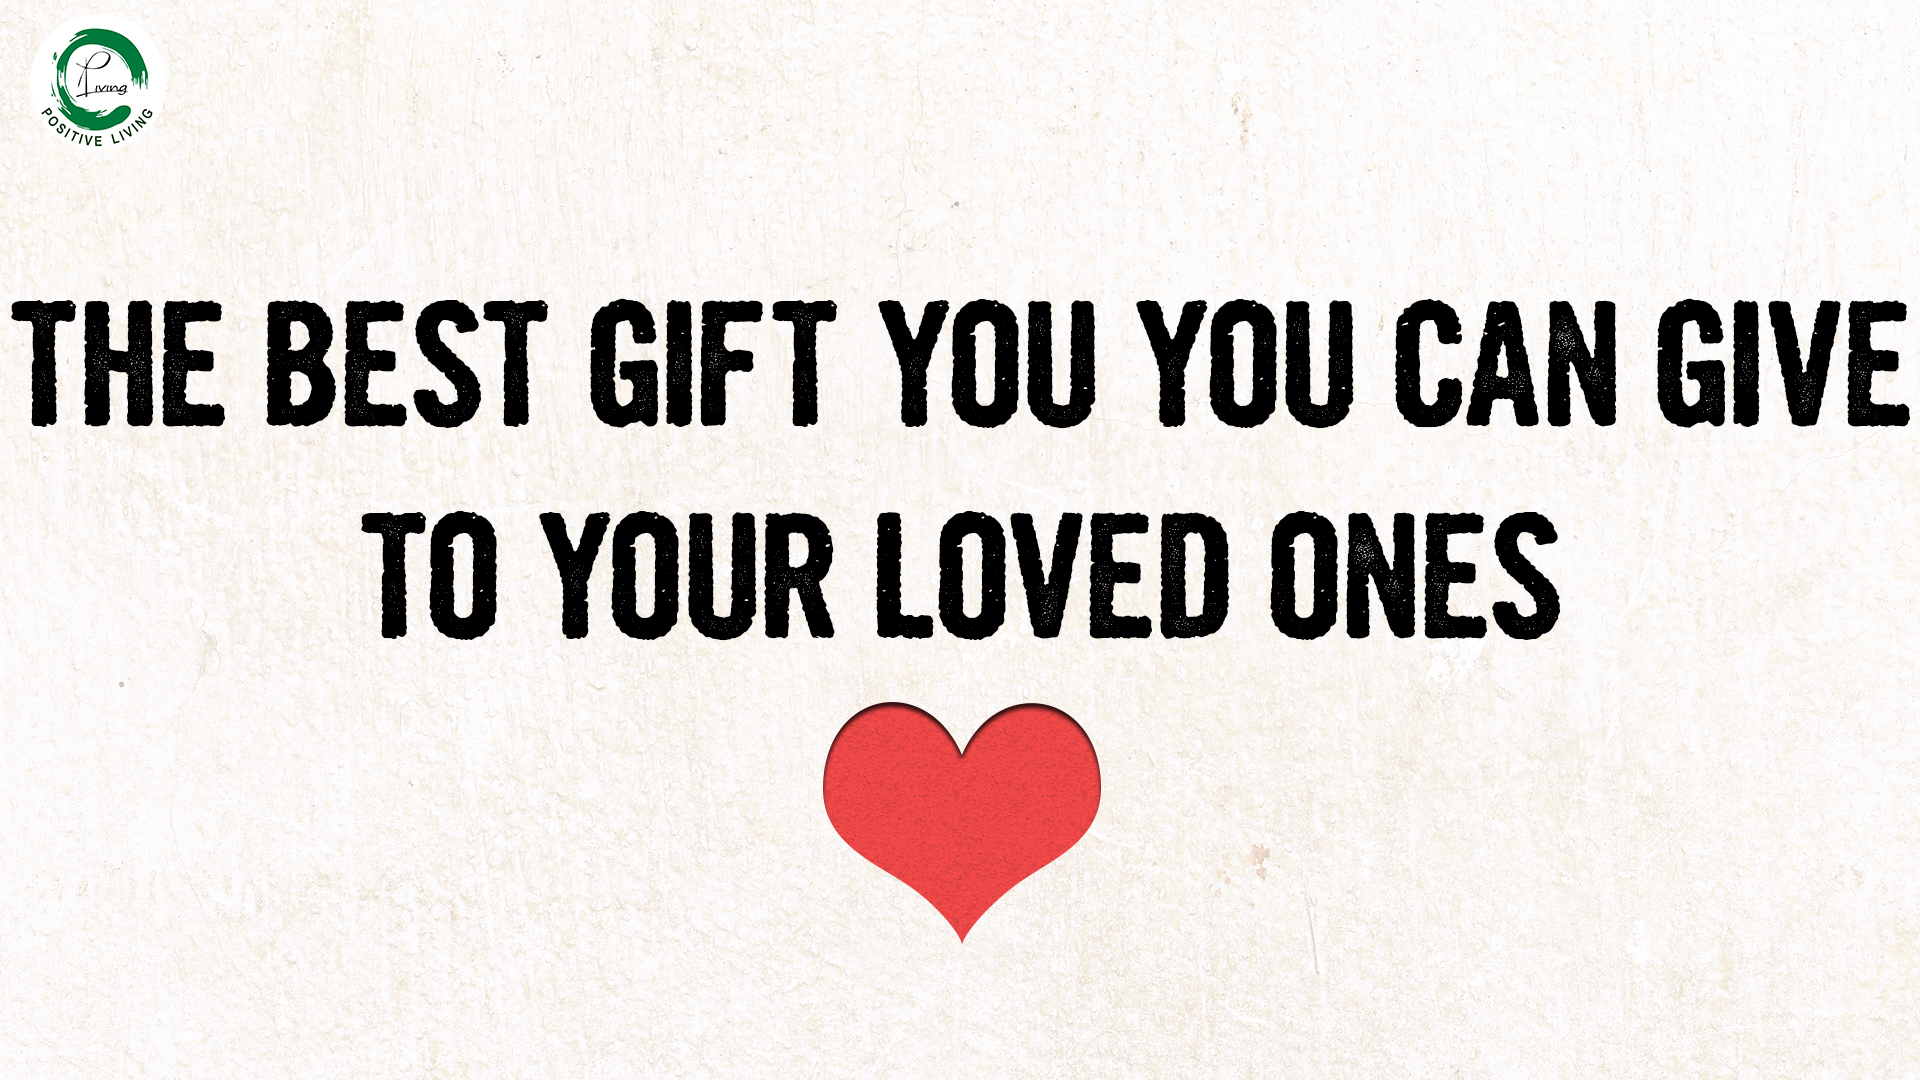 The best gift youc an give